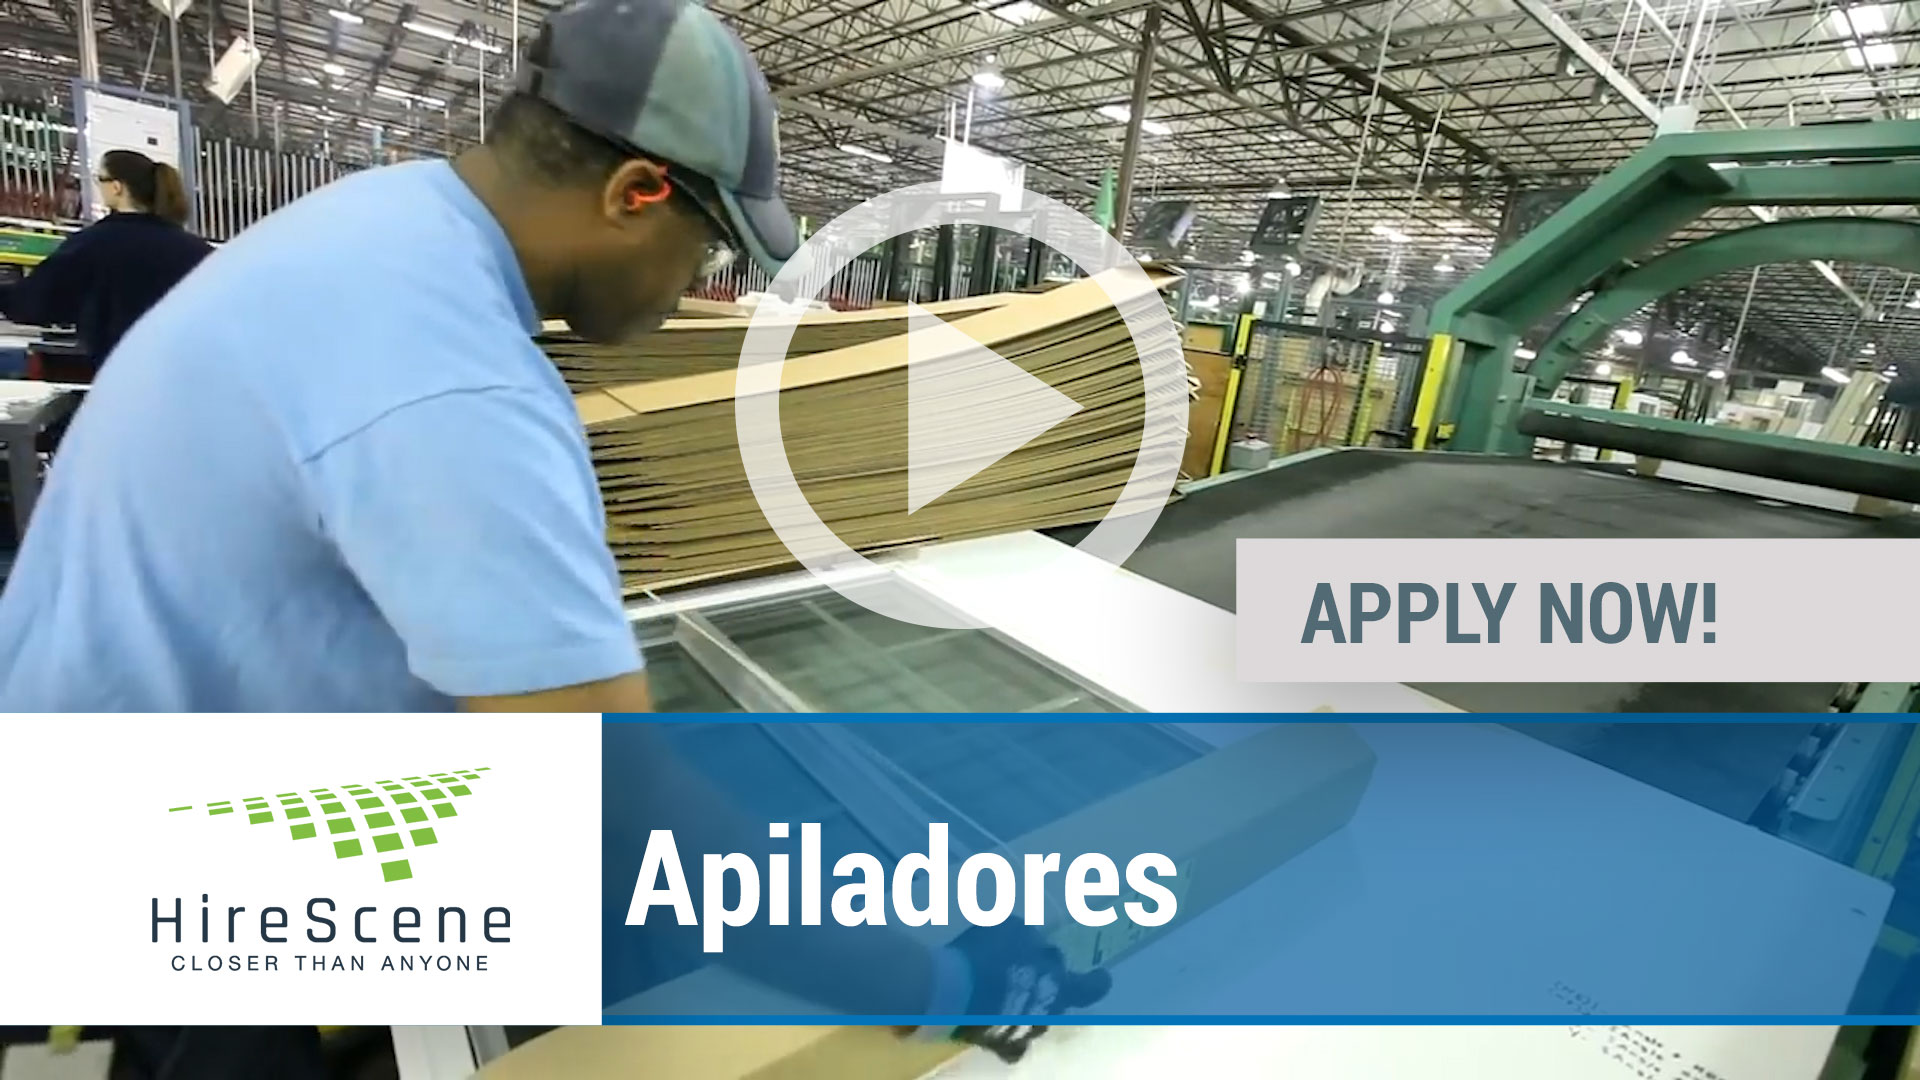 Watch our careers video for available job opening Apiladores in Dallas, TX, USA